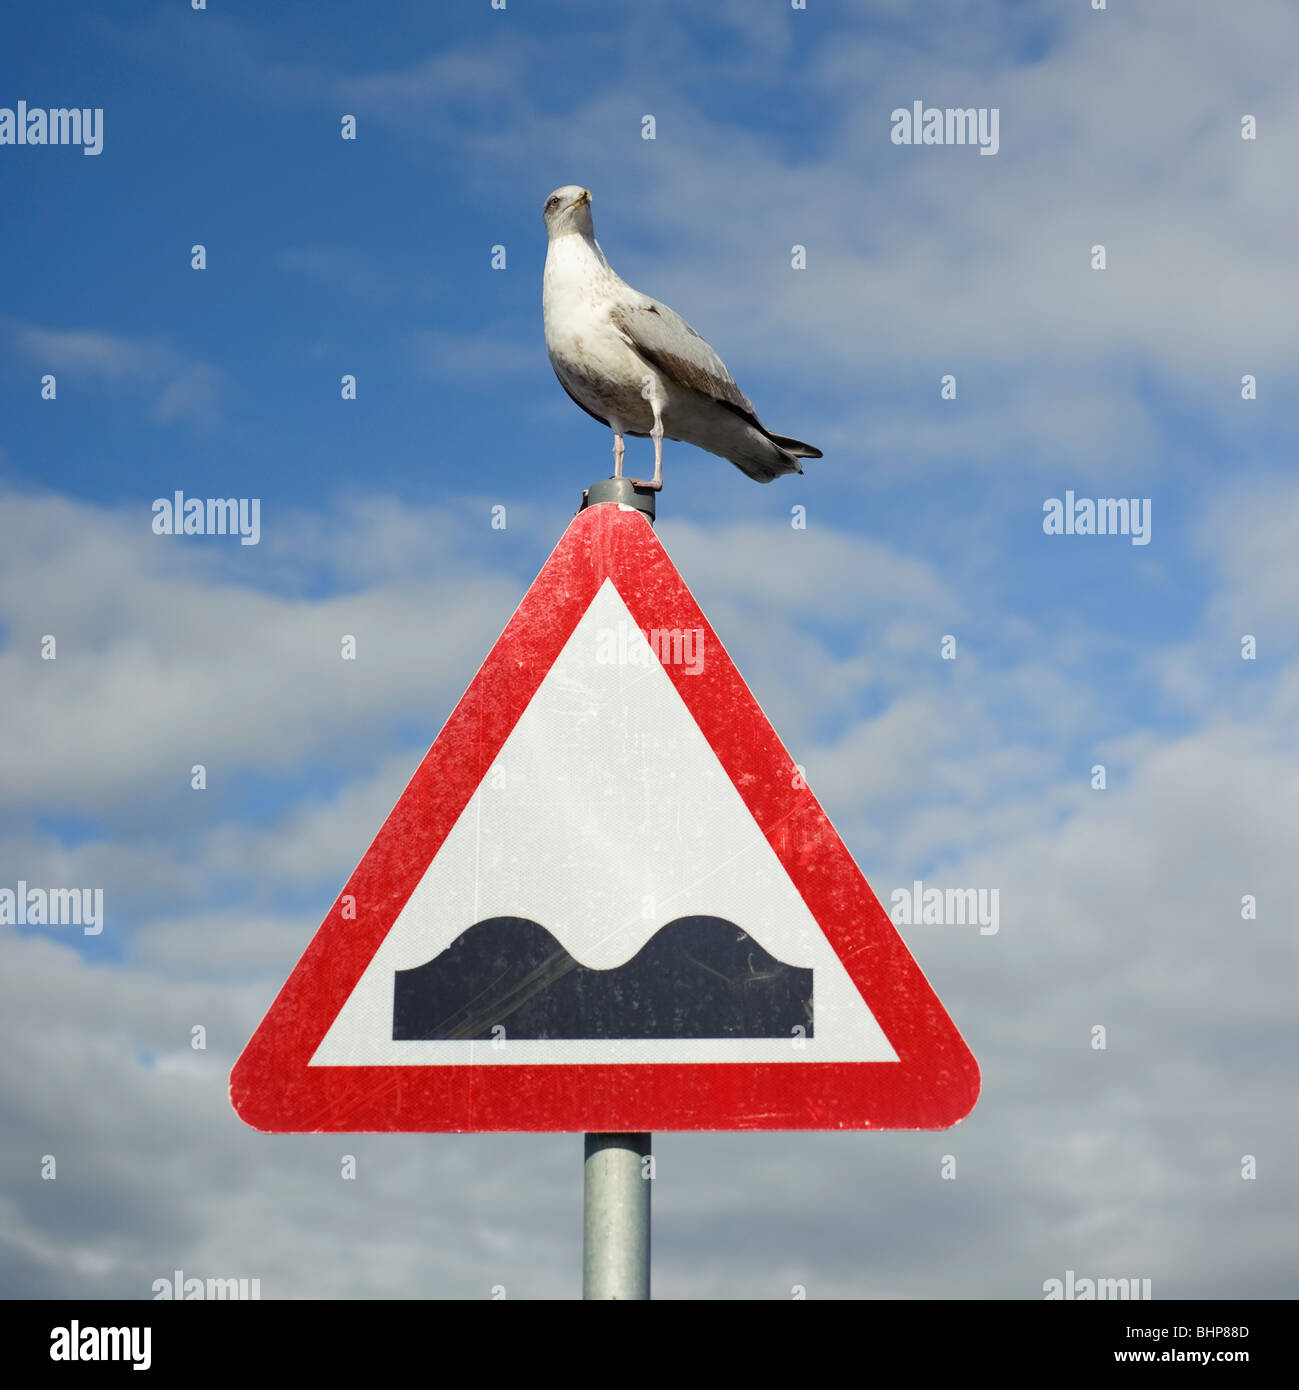 Seagull standing on triangular road humps warning sign, UK - Stock Image